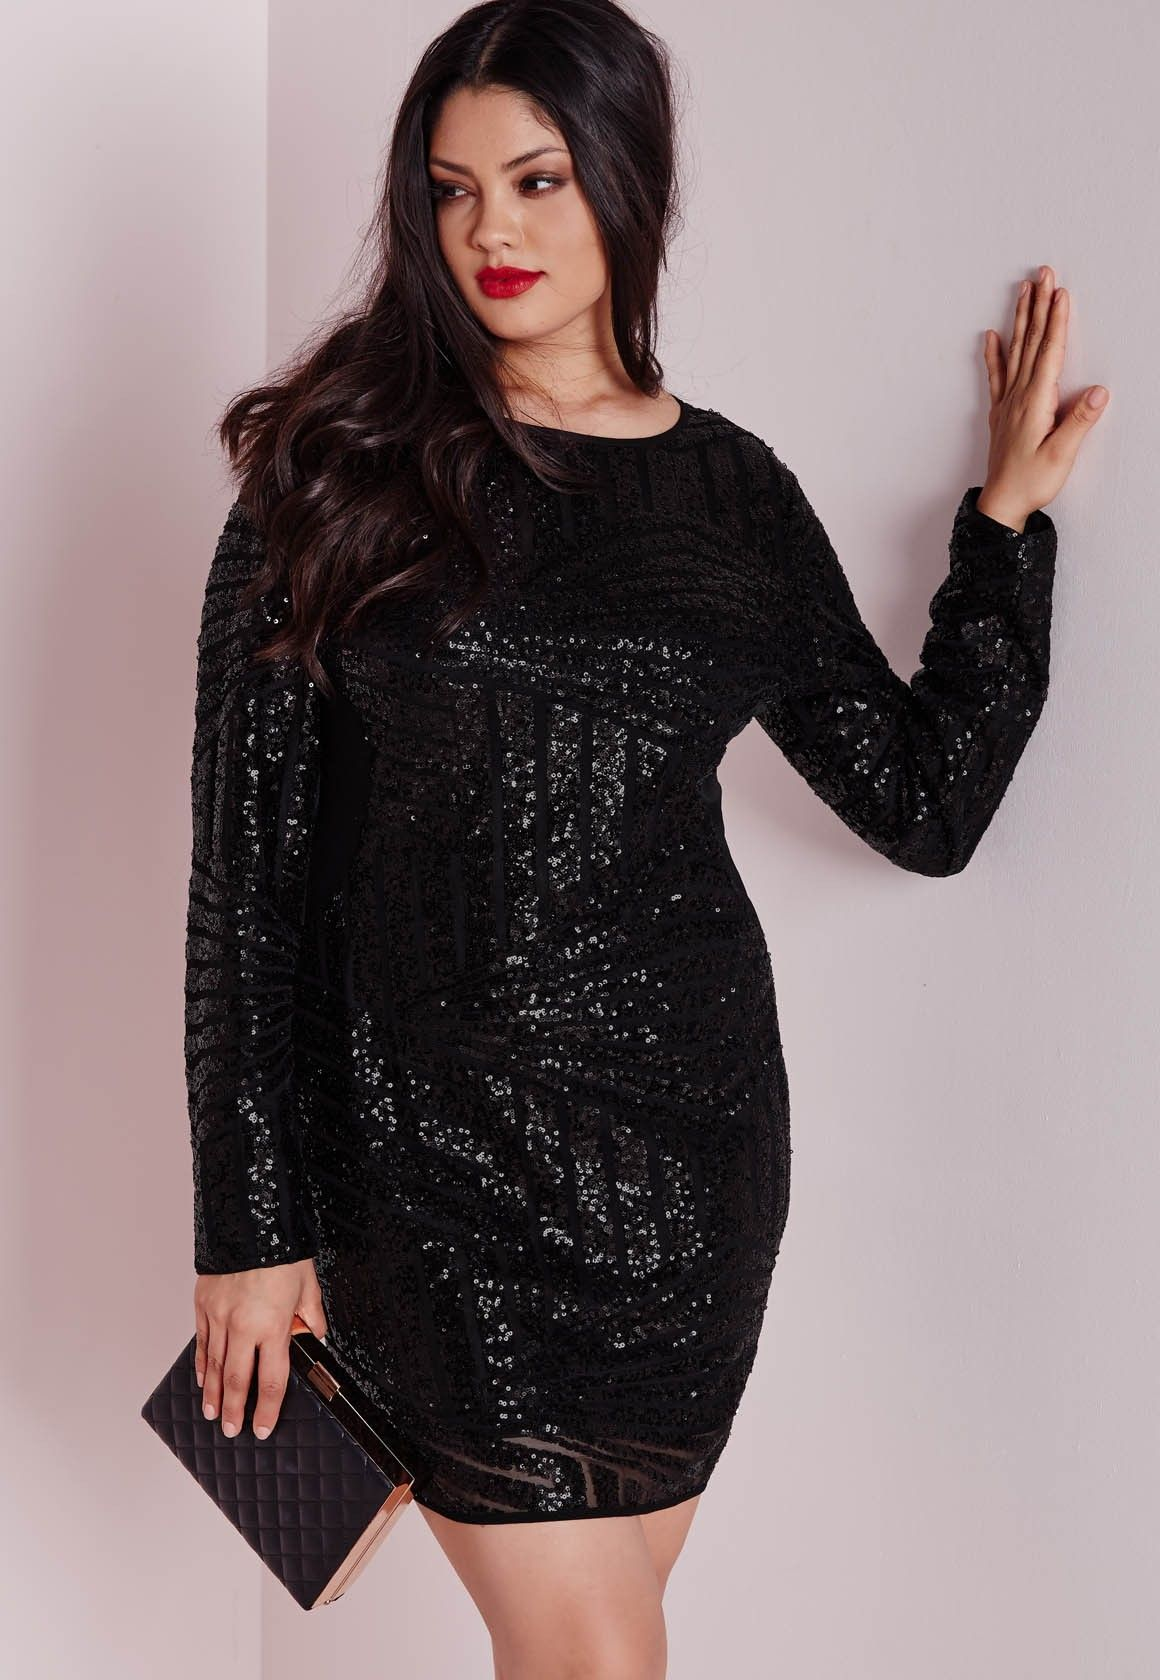 7f0851ed Long Sleeved Sequin Dress Plus Size – DACC